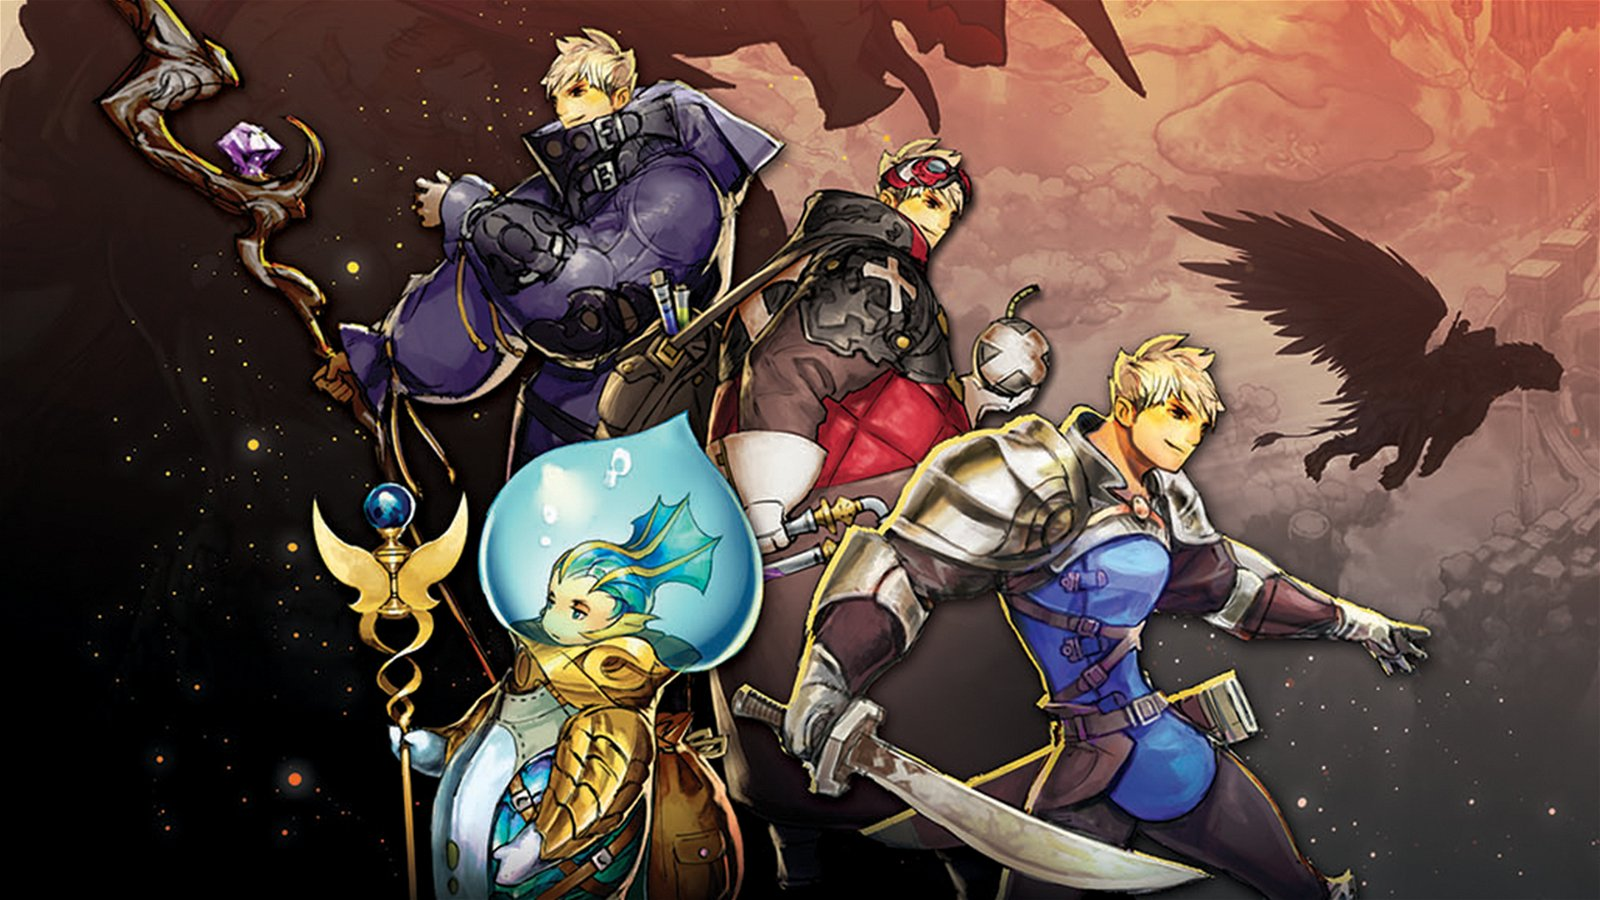 Zodiac Brings Hope for the JRPG Market in the West